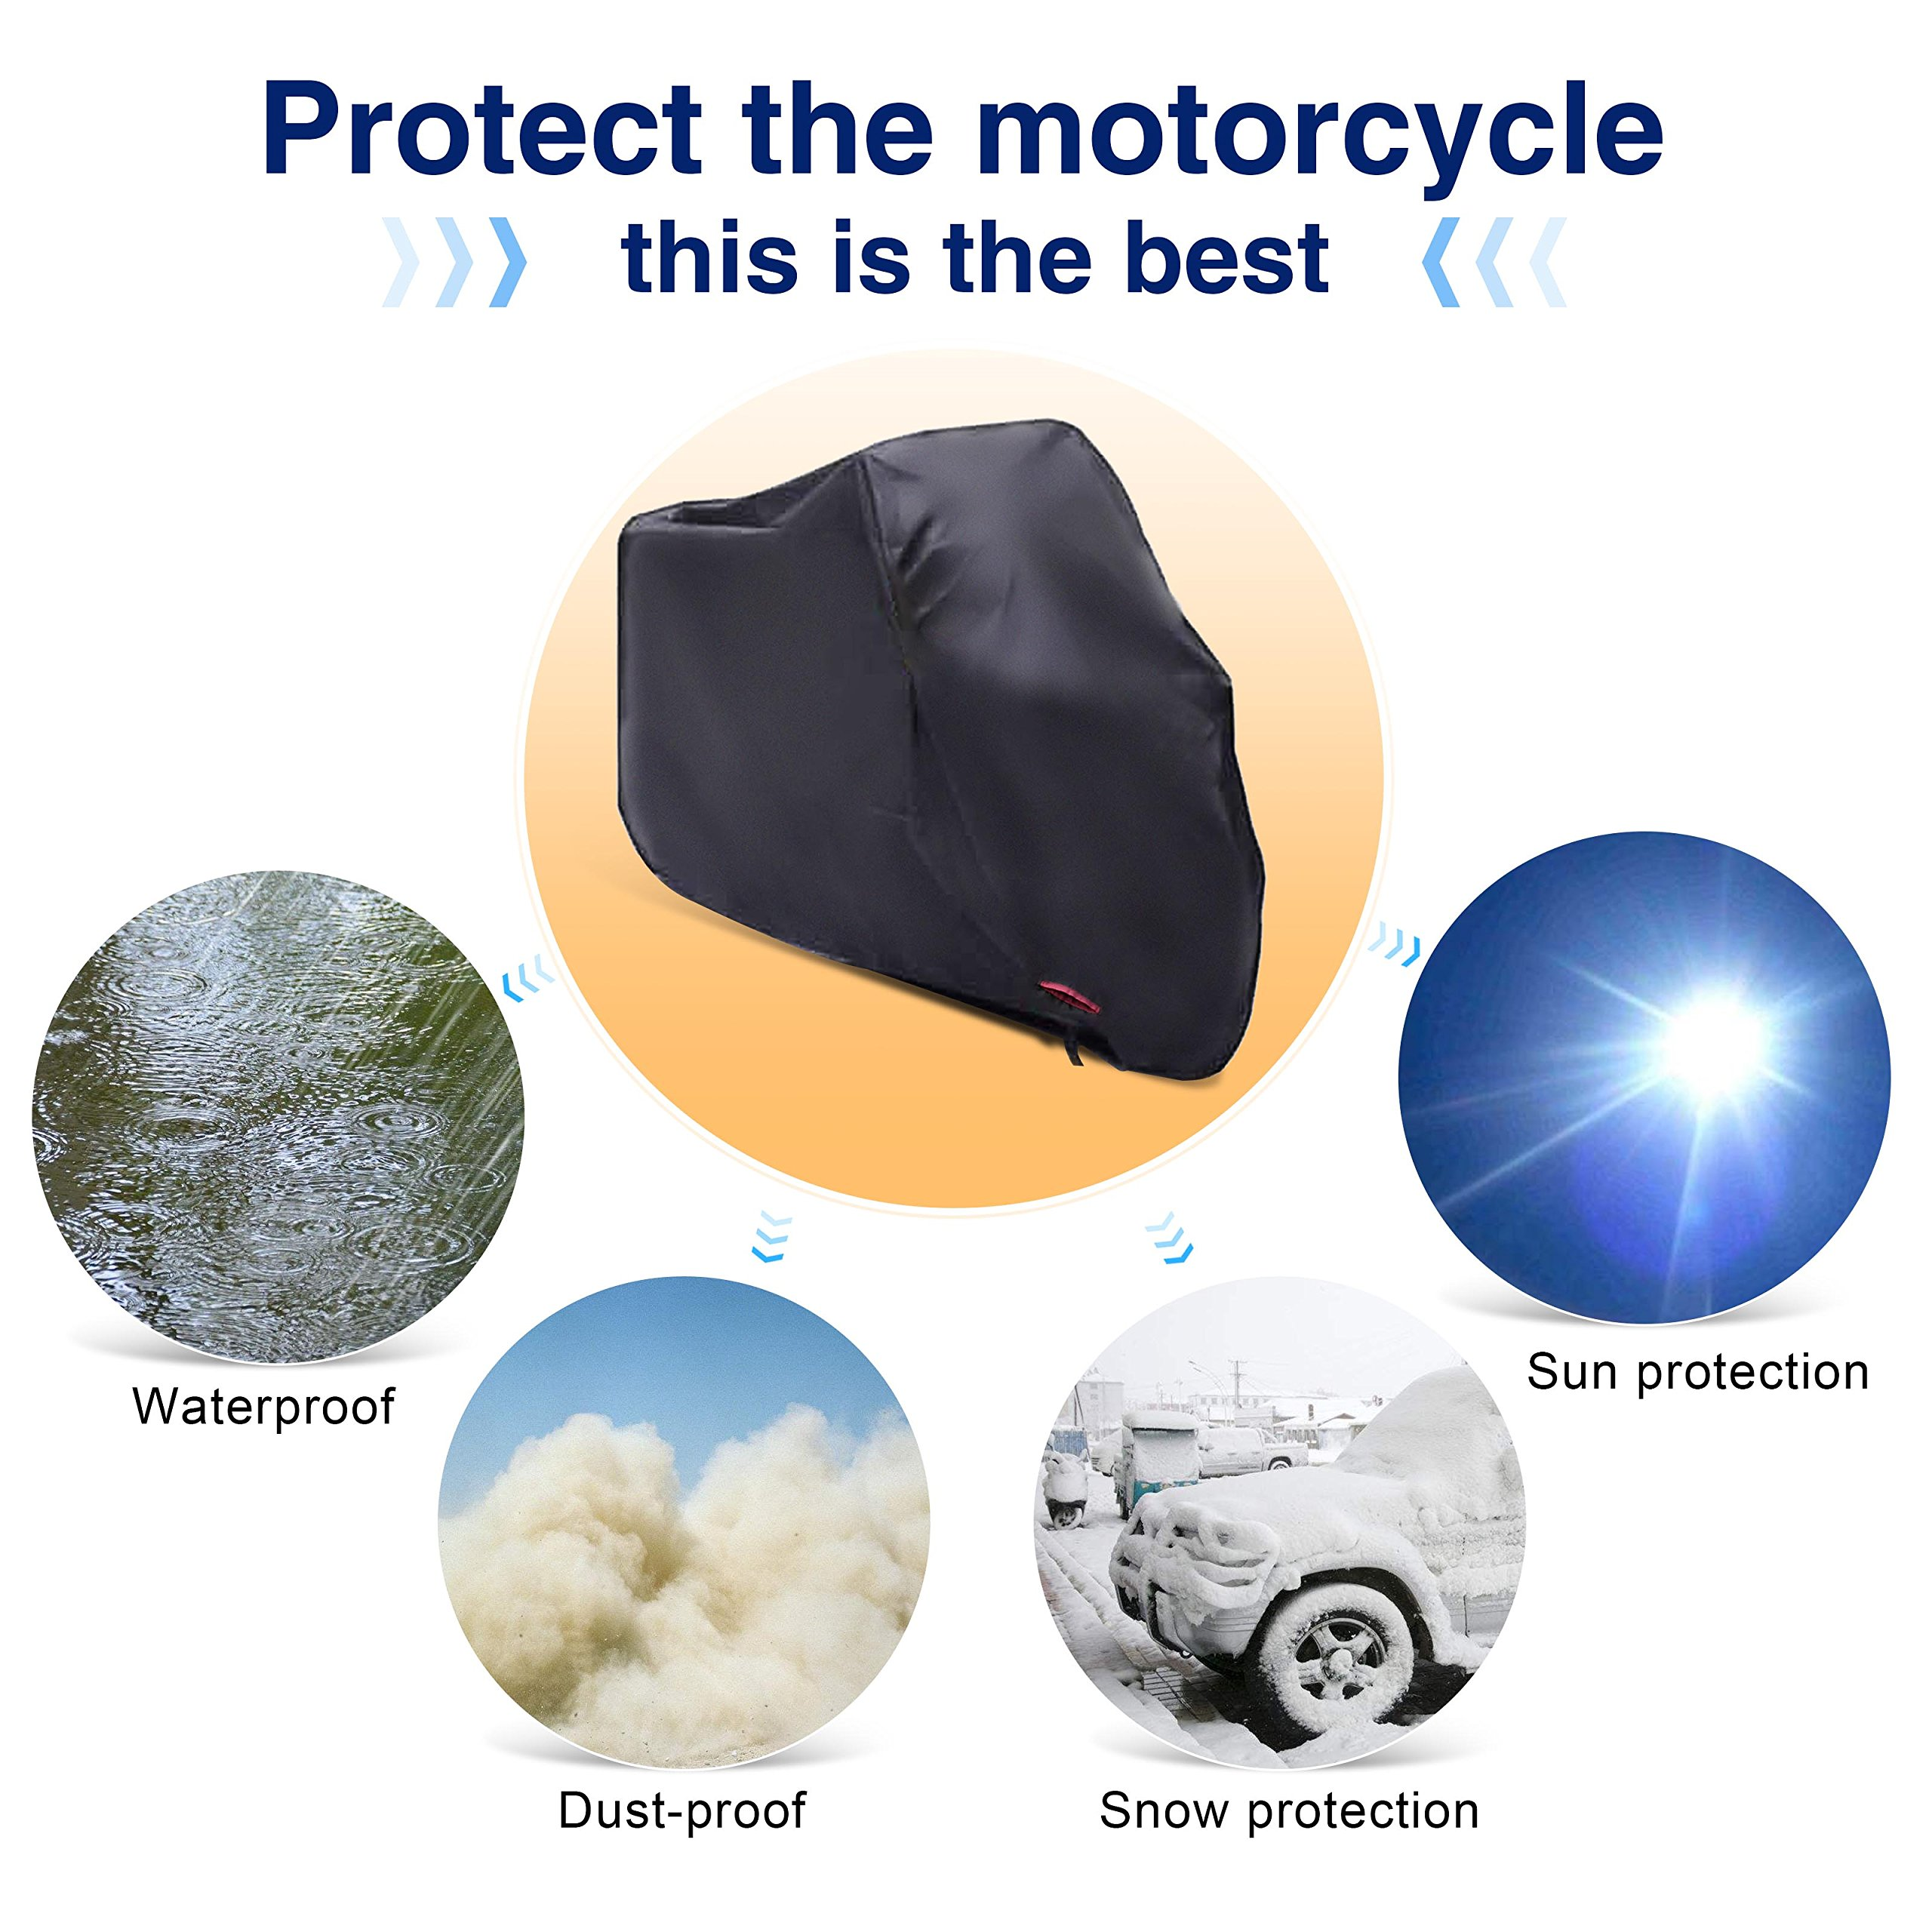 Motorcycle Cover,WDLHQC Waterproof Motorcycle Cover All Weather Outdoor Protection,Oxford Durable and Tear Proof,Precision Fit for 108 Inch Motors Like Honda,Yamaha,Suzuki,Harley and More-XXL,Black by WDLHQC (Image #6)